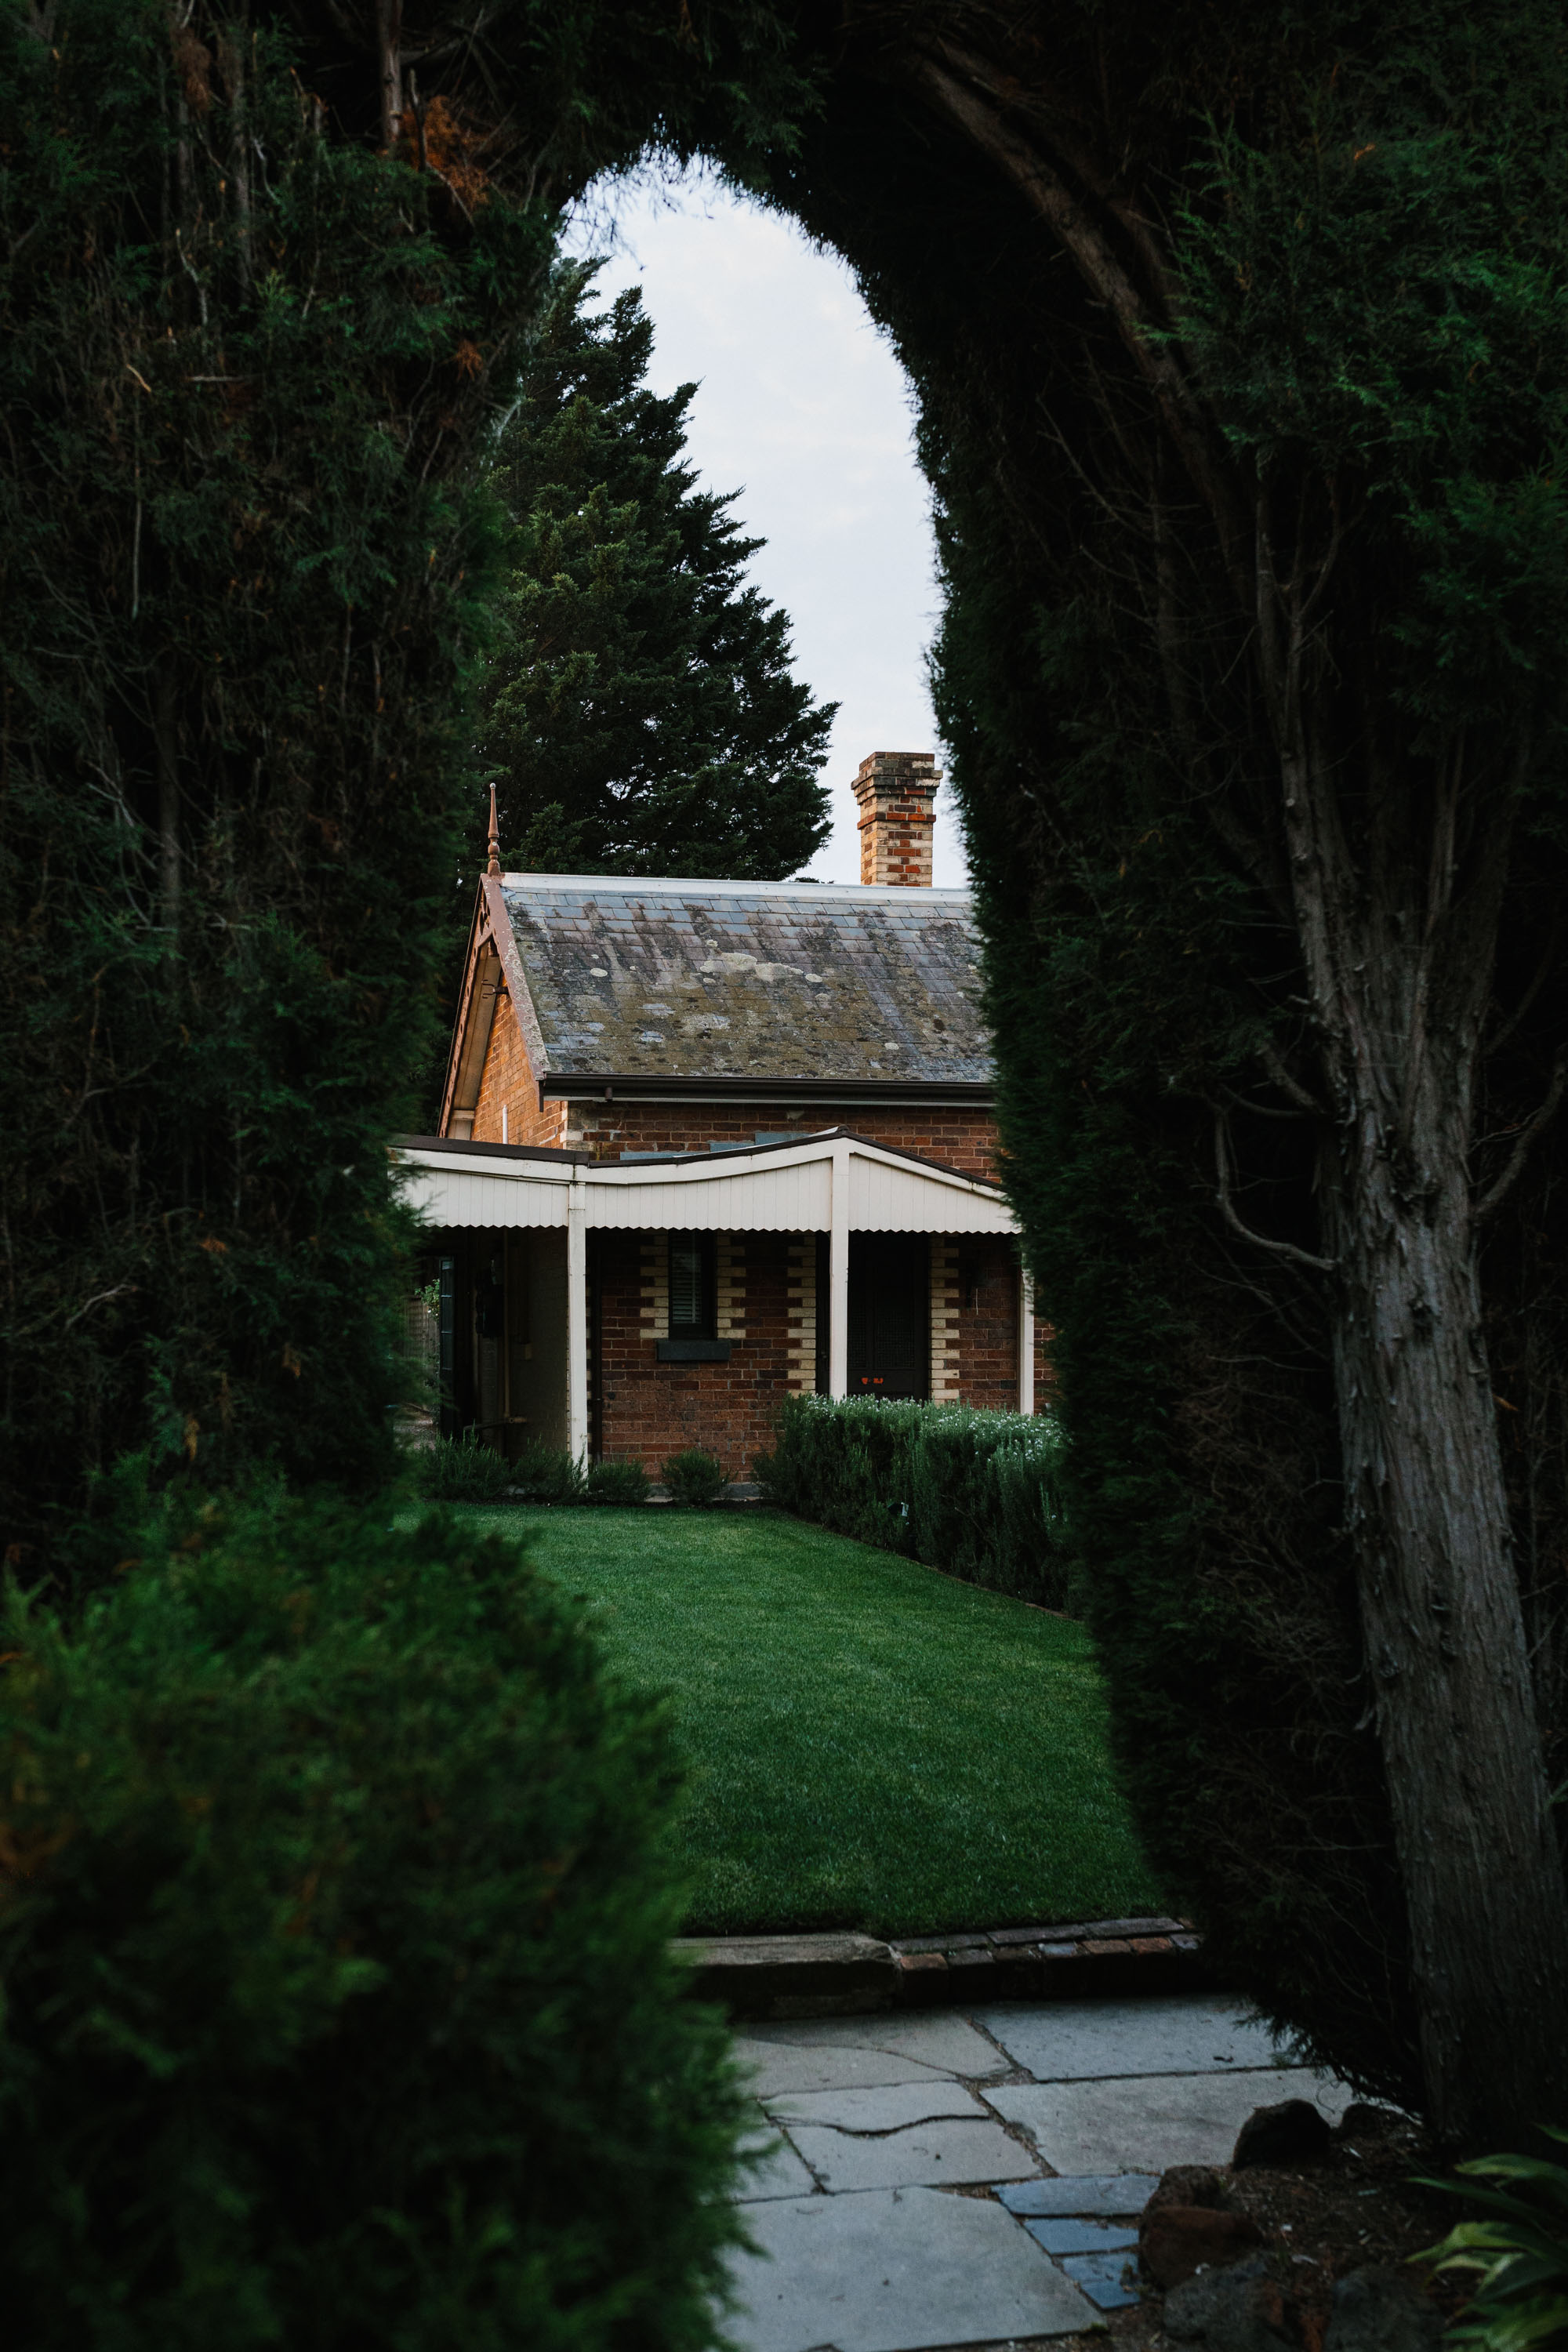 Marnie Hawson, Melbourne interior photographer for The National Trust and Barwon Grange